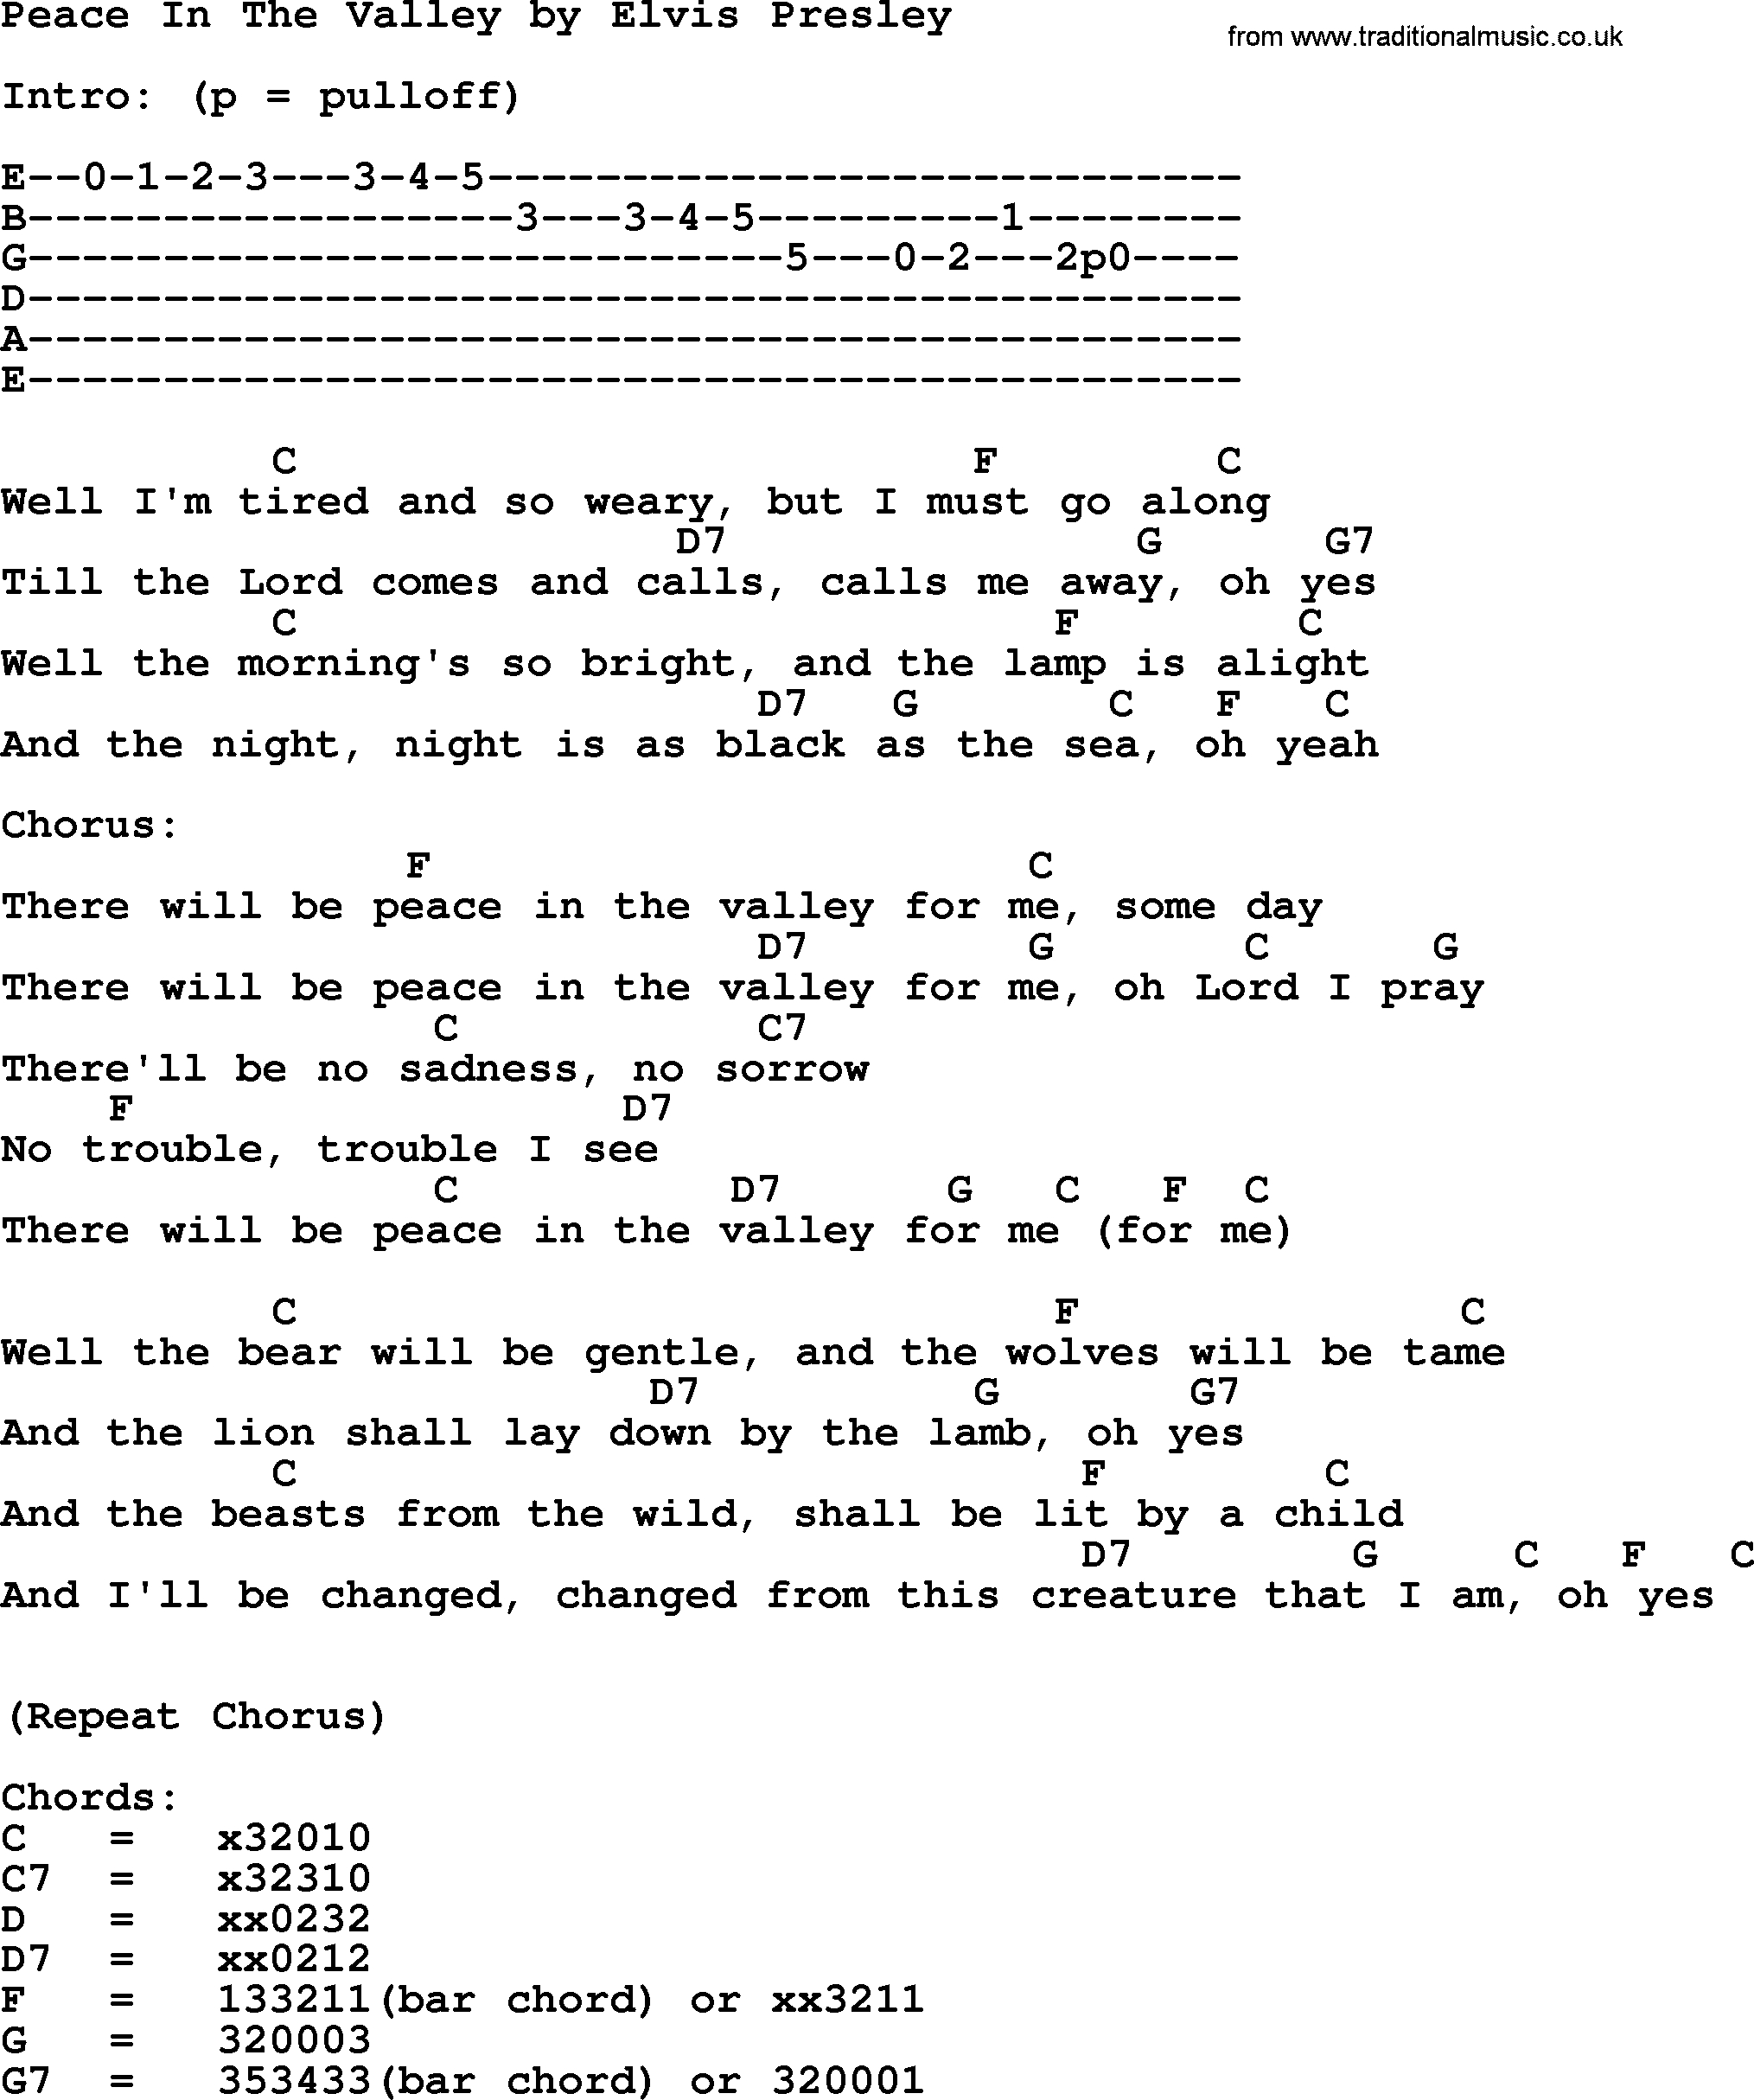 Lion And The Lamb Chords Peace In The Valley Elvis Presley Lyrics And Chords